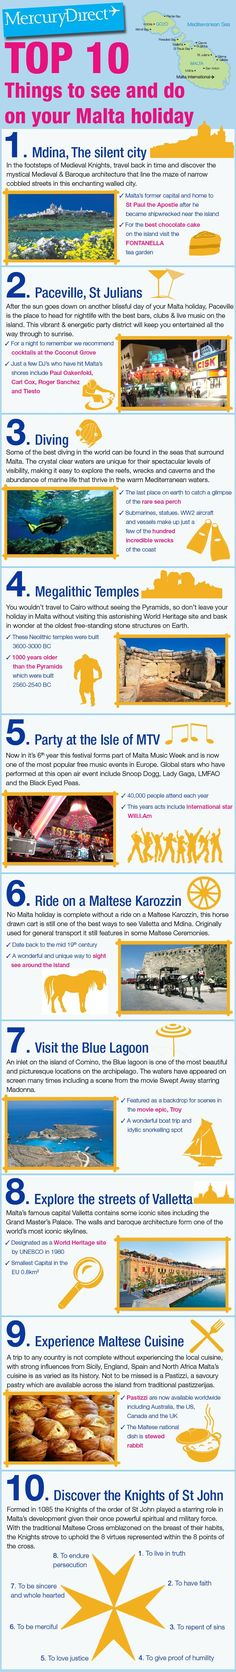 Top 10 things to see and do in Malta... how many of these have you seen? #malta #LearnEnglish